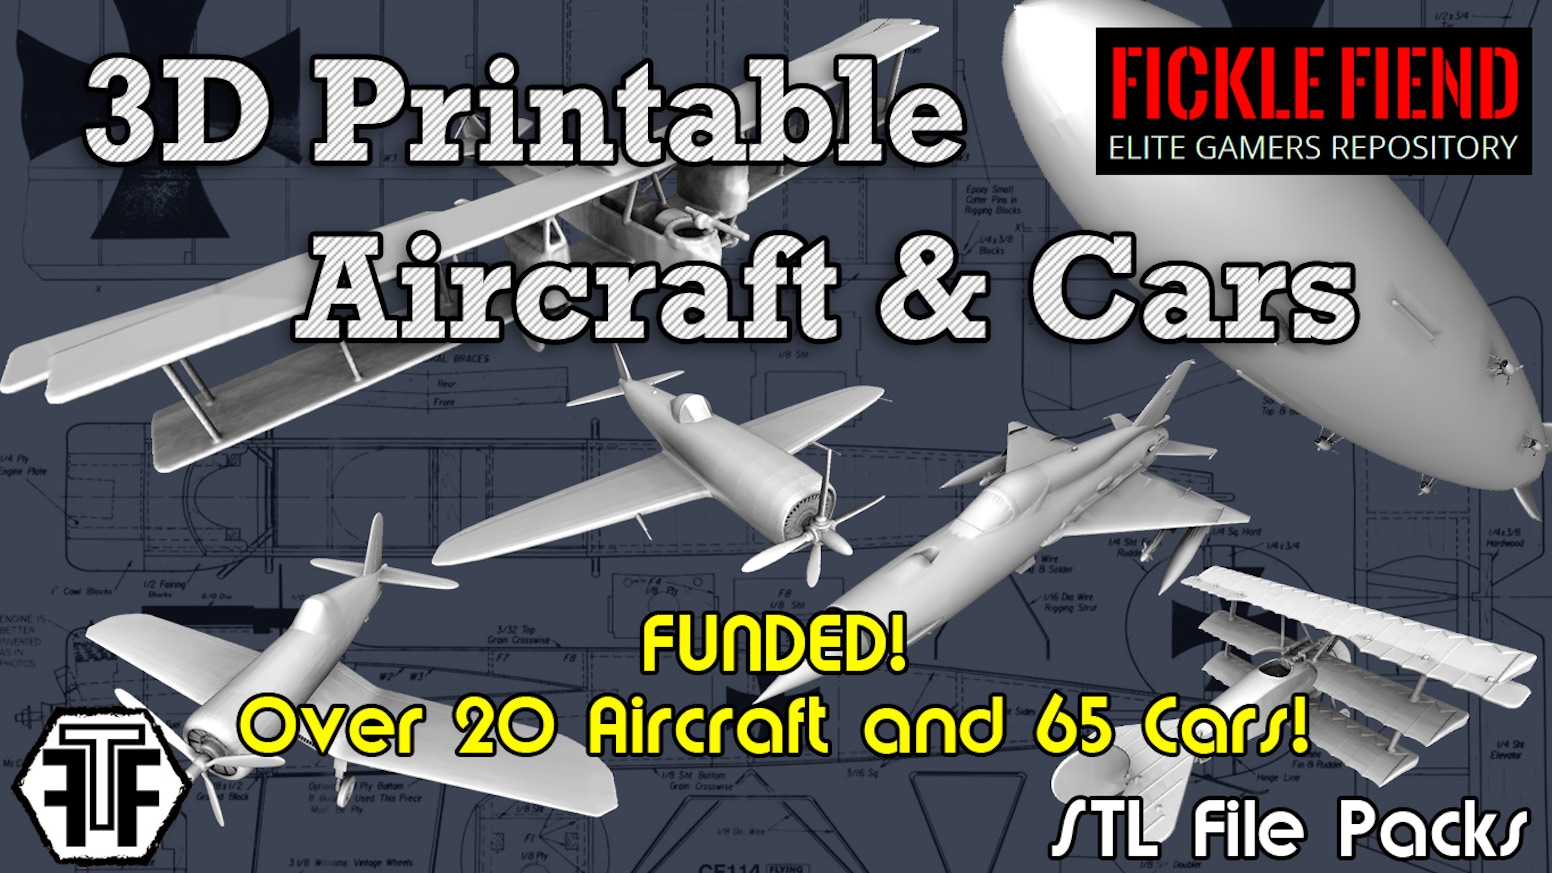 3d printable aircraft 1 144 scale stl files for gaming by fickle